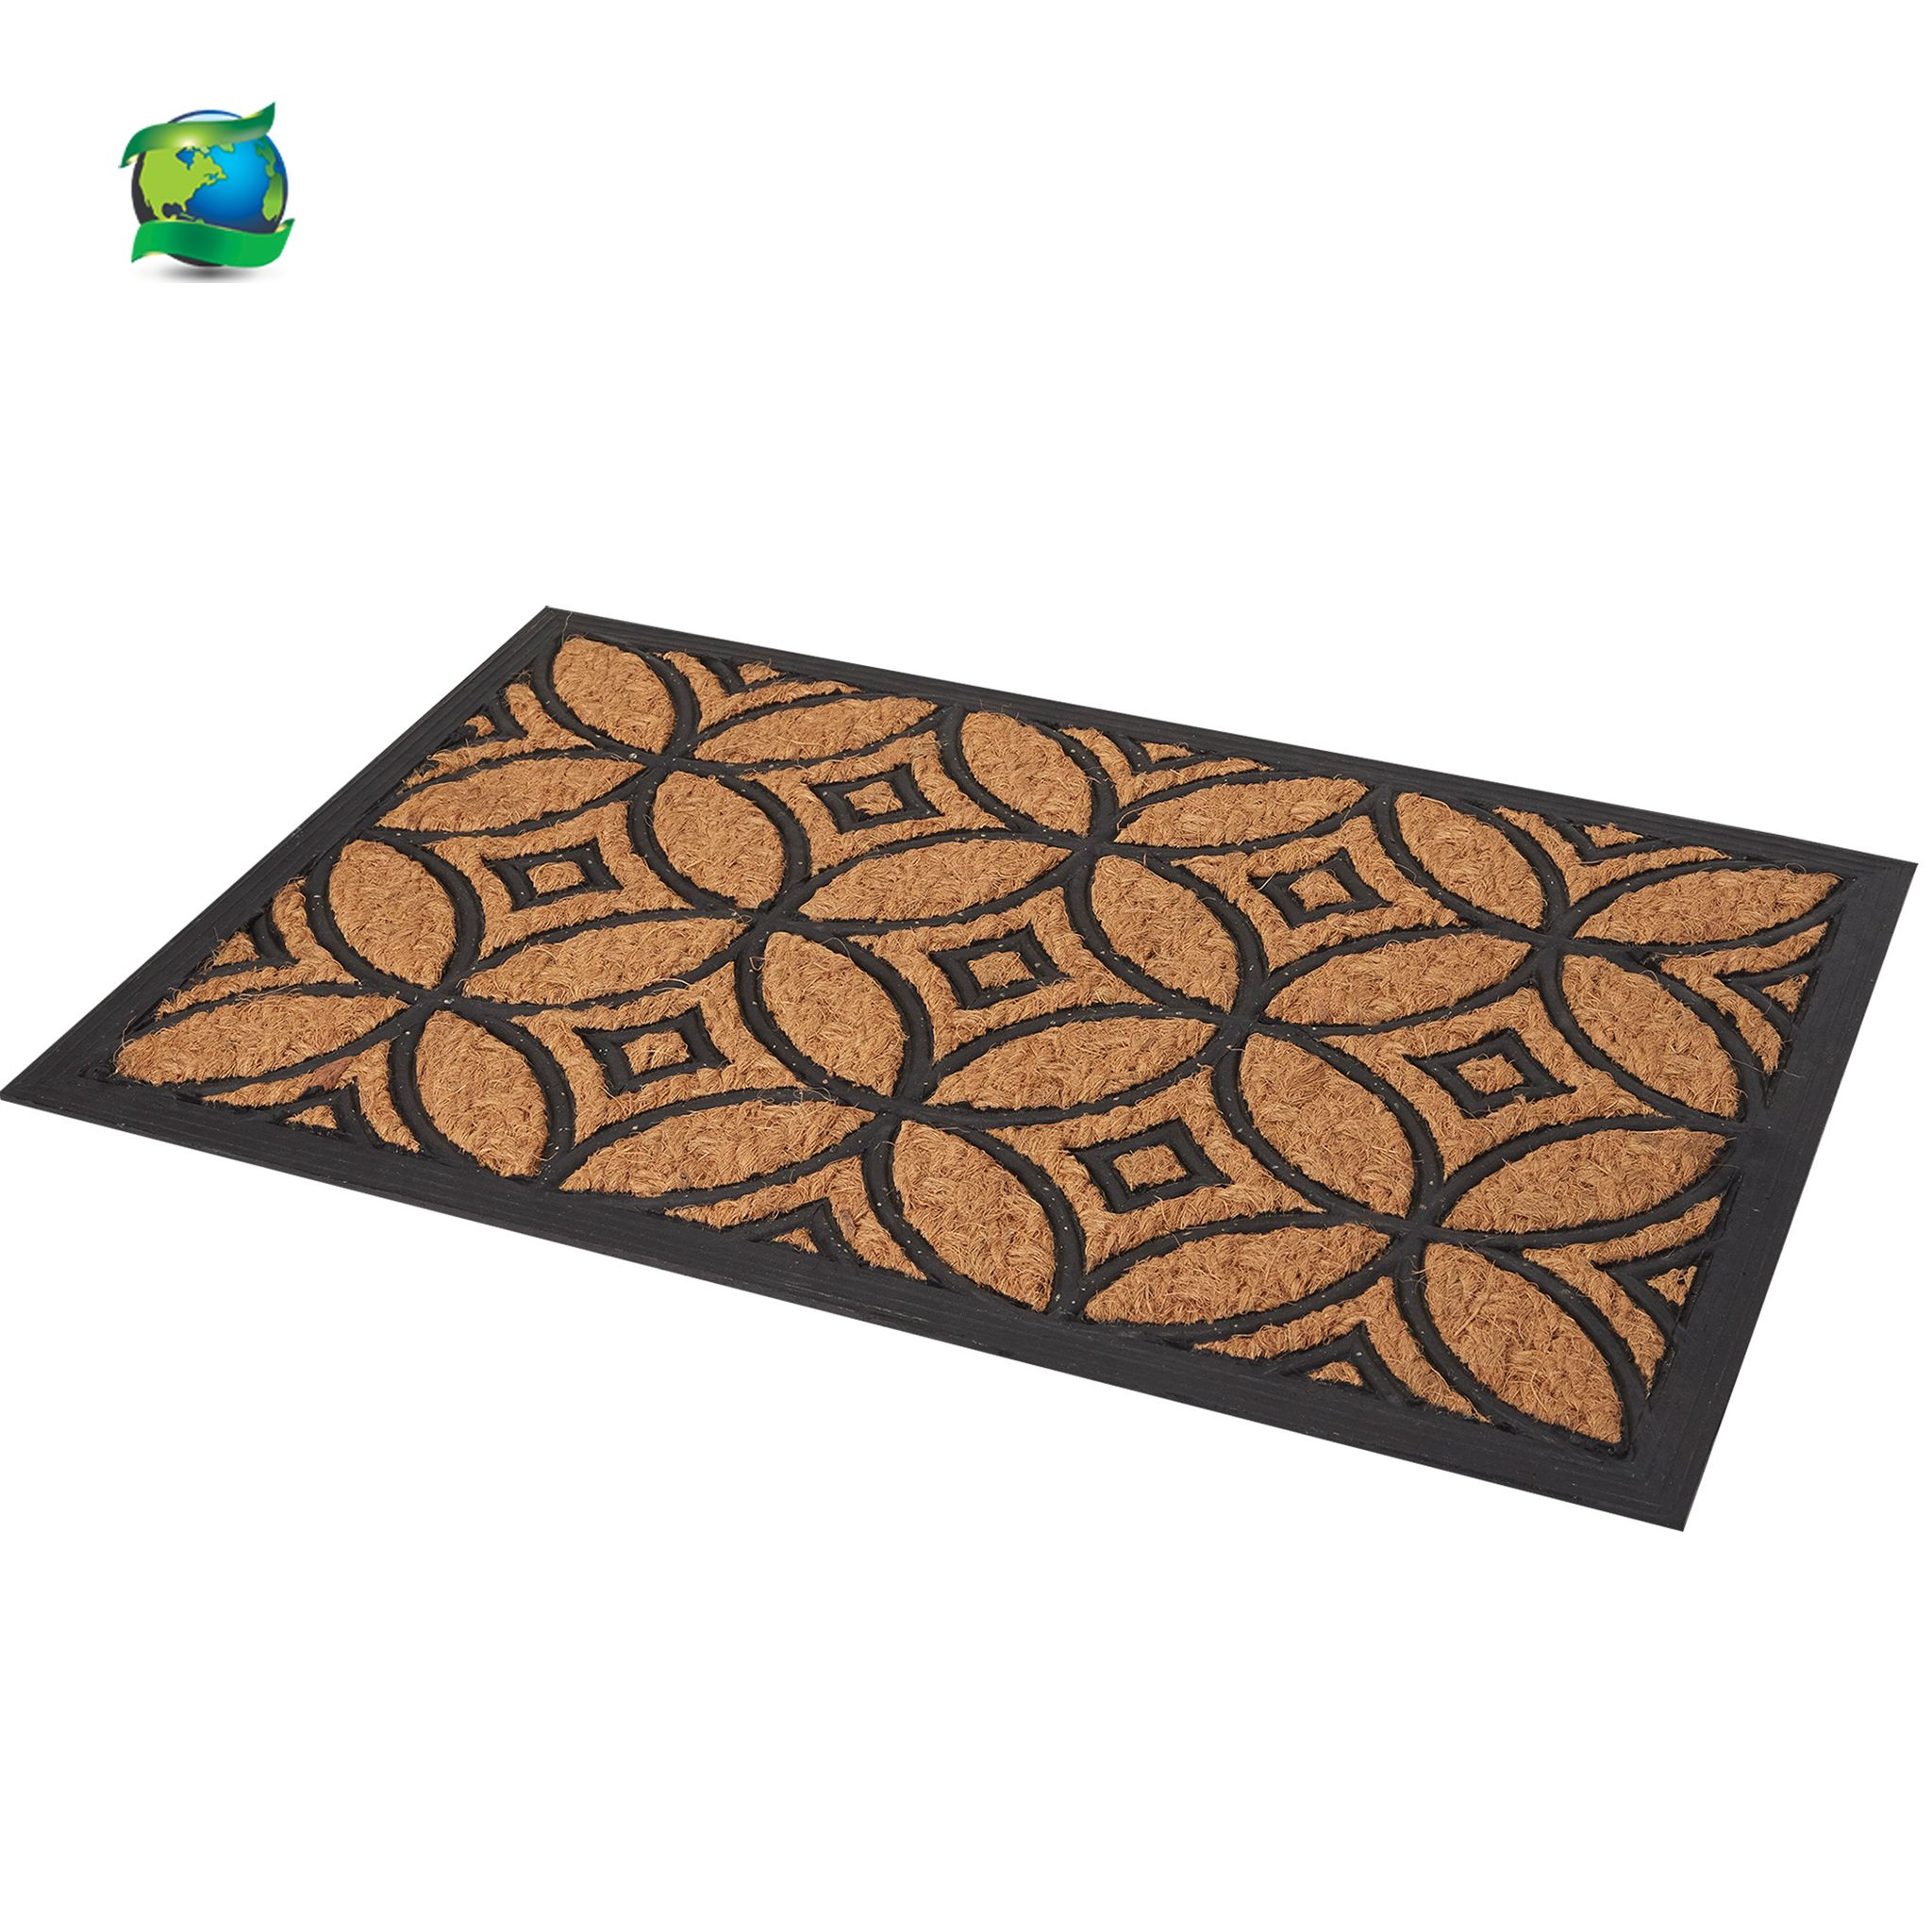 Rubber Coit Mat Is A Lovely Addition To